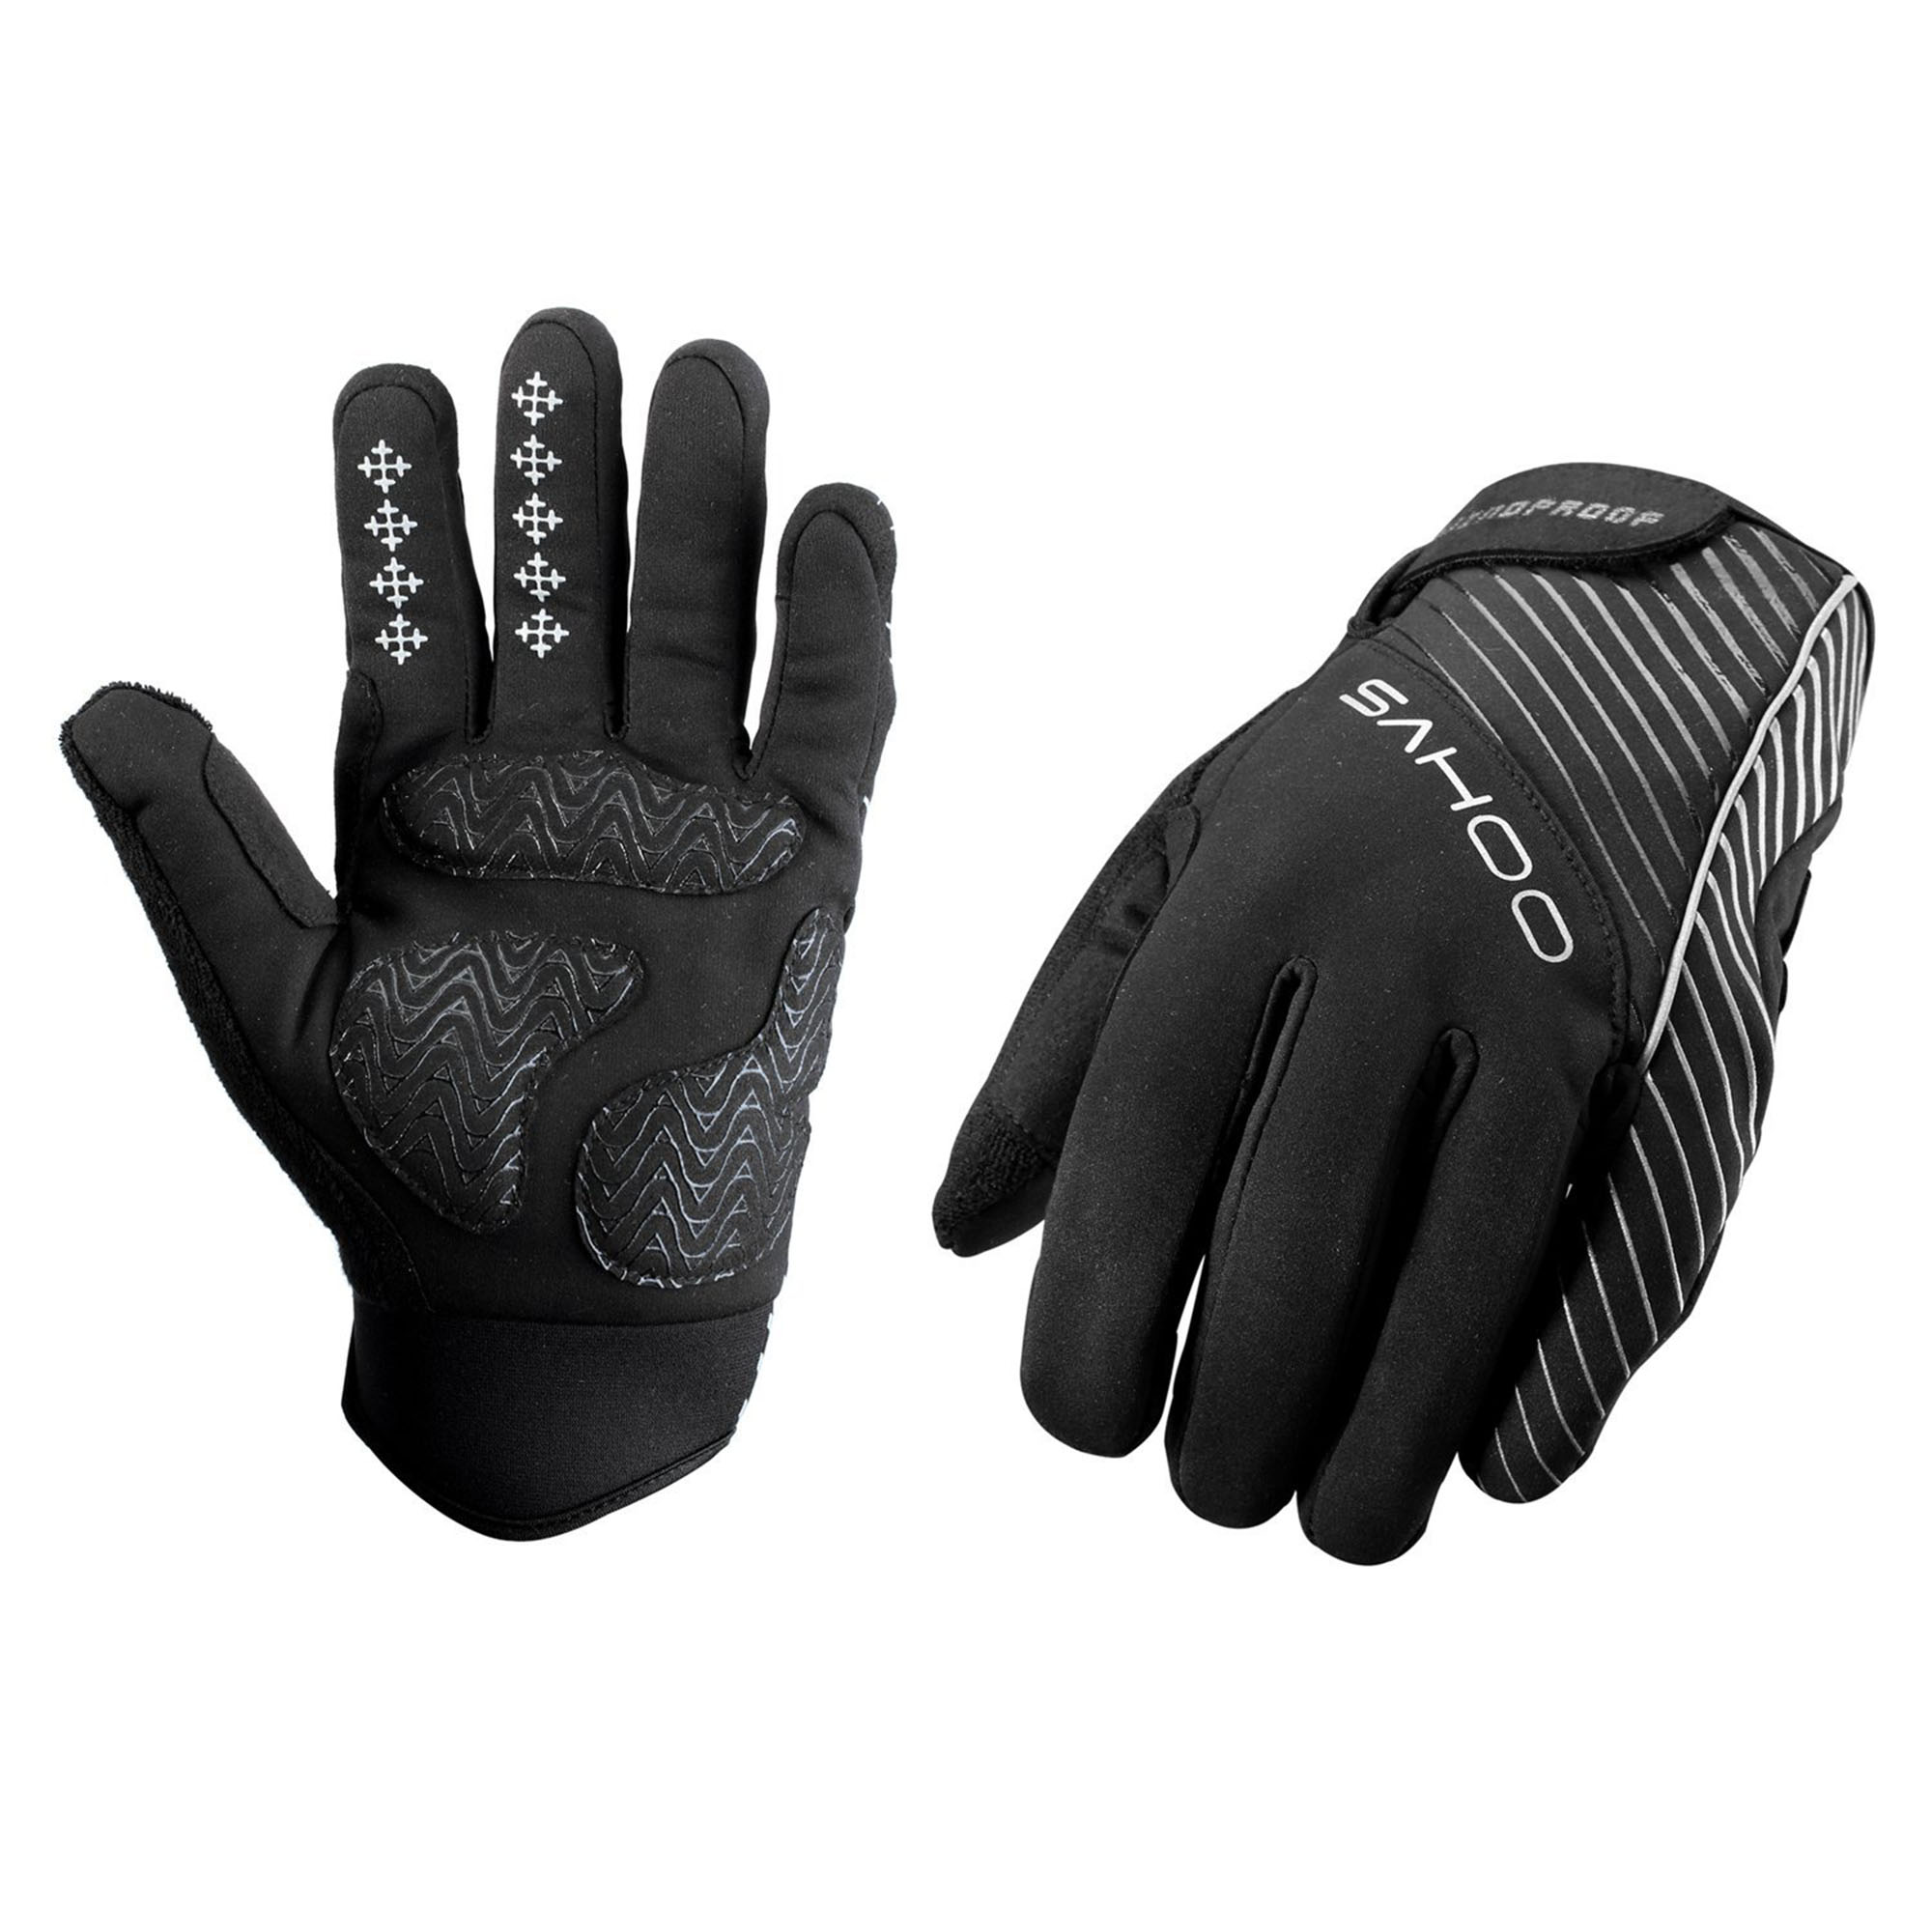 WEANAS Bike Bicycle Men Winter Full Finger Cycling Gloves, Windproof Warmth Attractive, for Outdoor, Riding (Black,... by Weanas